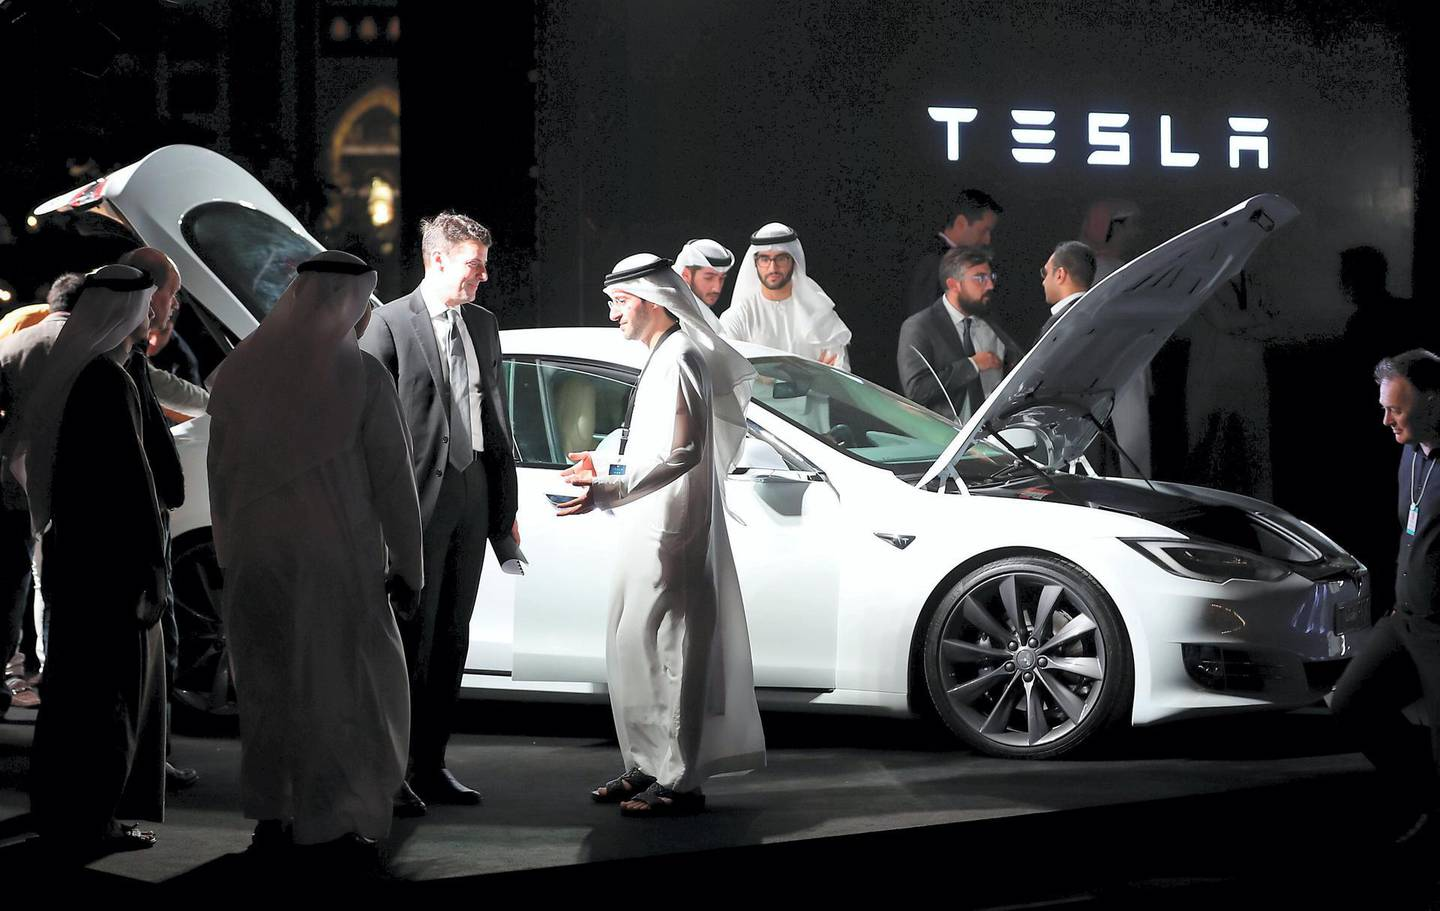 Emirati men check a vehicle manufactured by Electric carmaker Tesla during a ceremony in Dubai, on February 13, 2017.   Tesla announced the opening of a new Gulf headquarters in Dubai, aiming to conquer an oil-rich region better known for gas guzzlers than environmentally friendly motoring. / AFP PHOTO / KARIM SAHIB